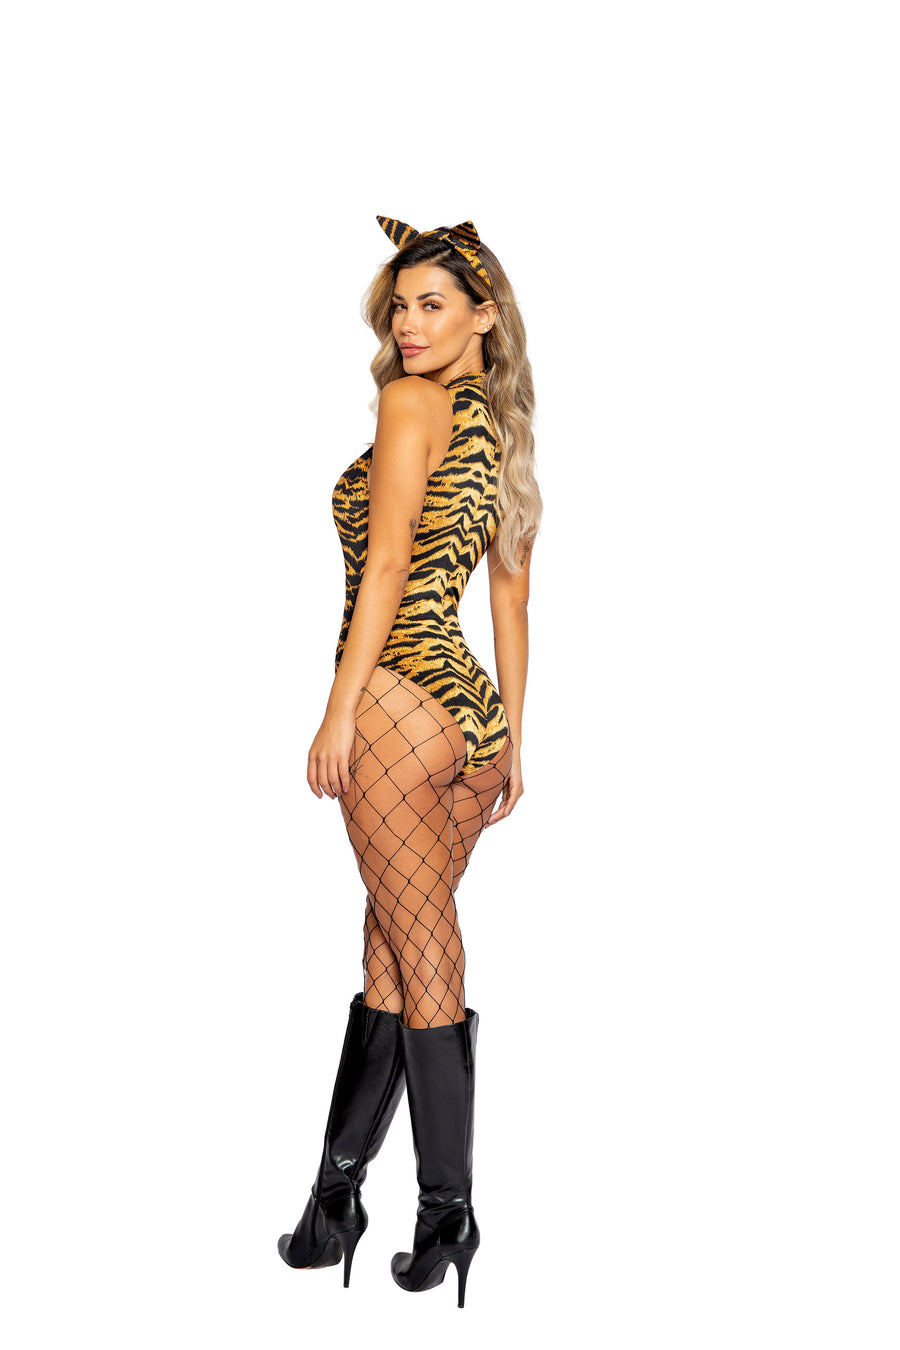 Roma Innocent Tiger Costume